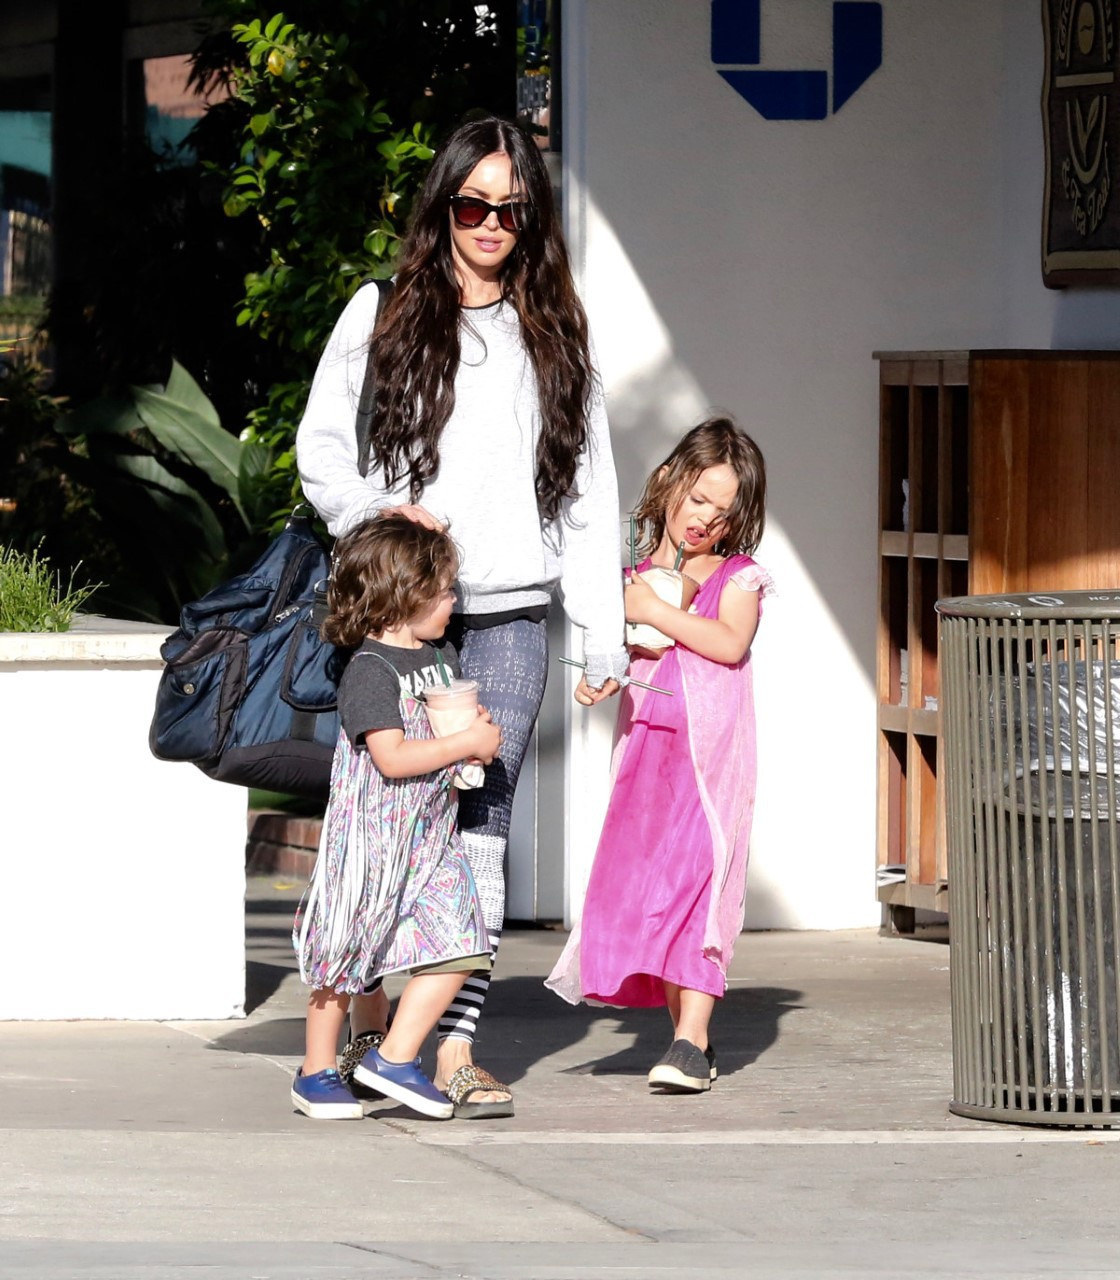 Megan Fox Defends Her Son's Decision To Wear Dresses